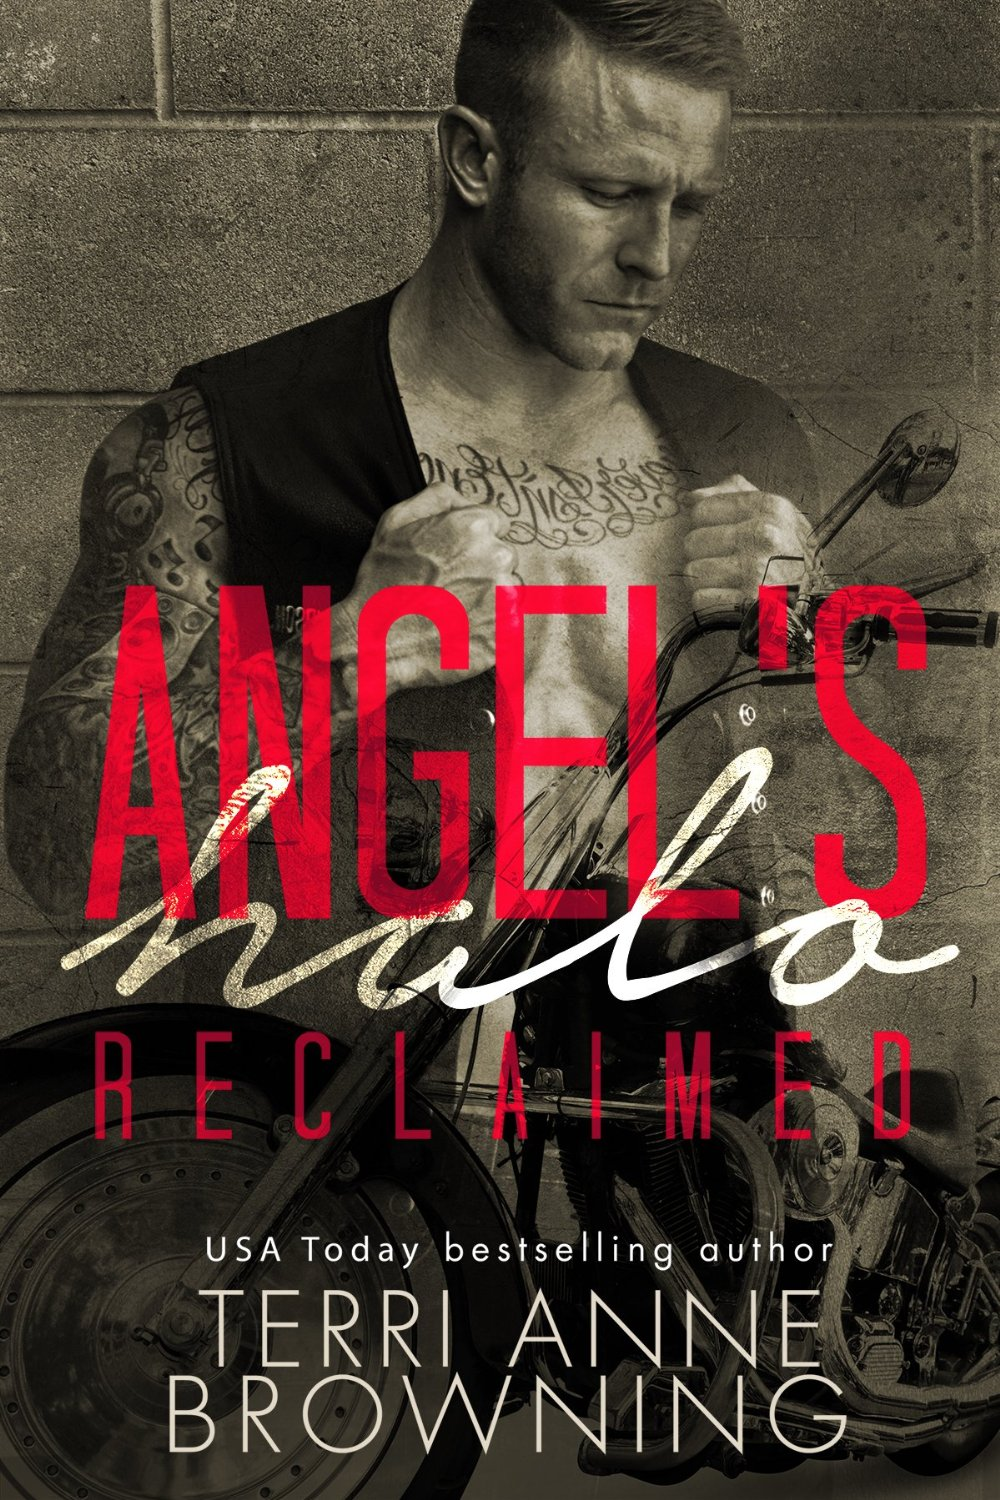 Angel's Halo: Reclaimed by Terri Anne Browning